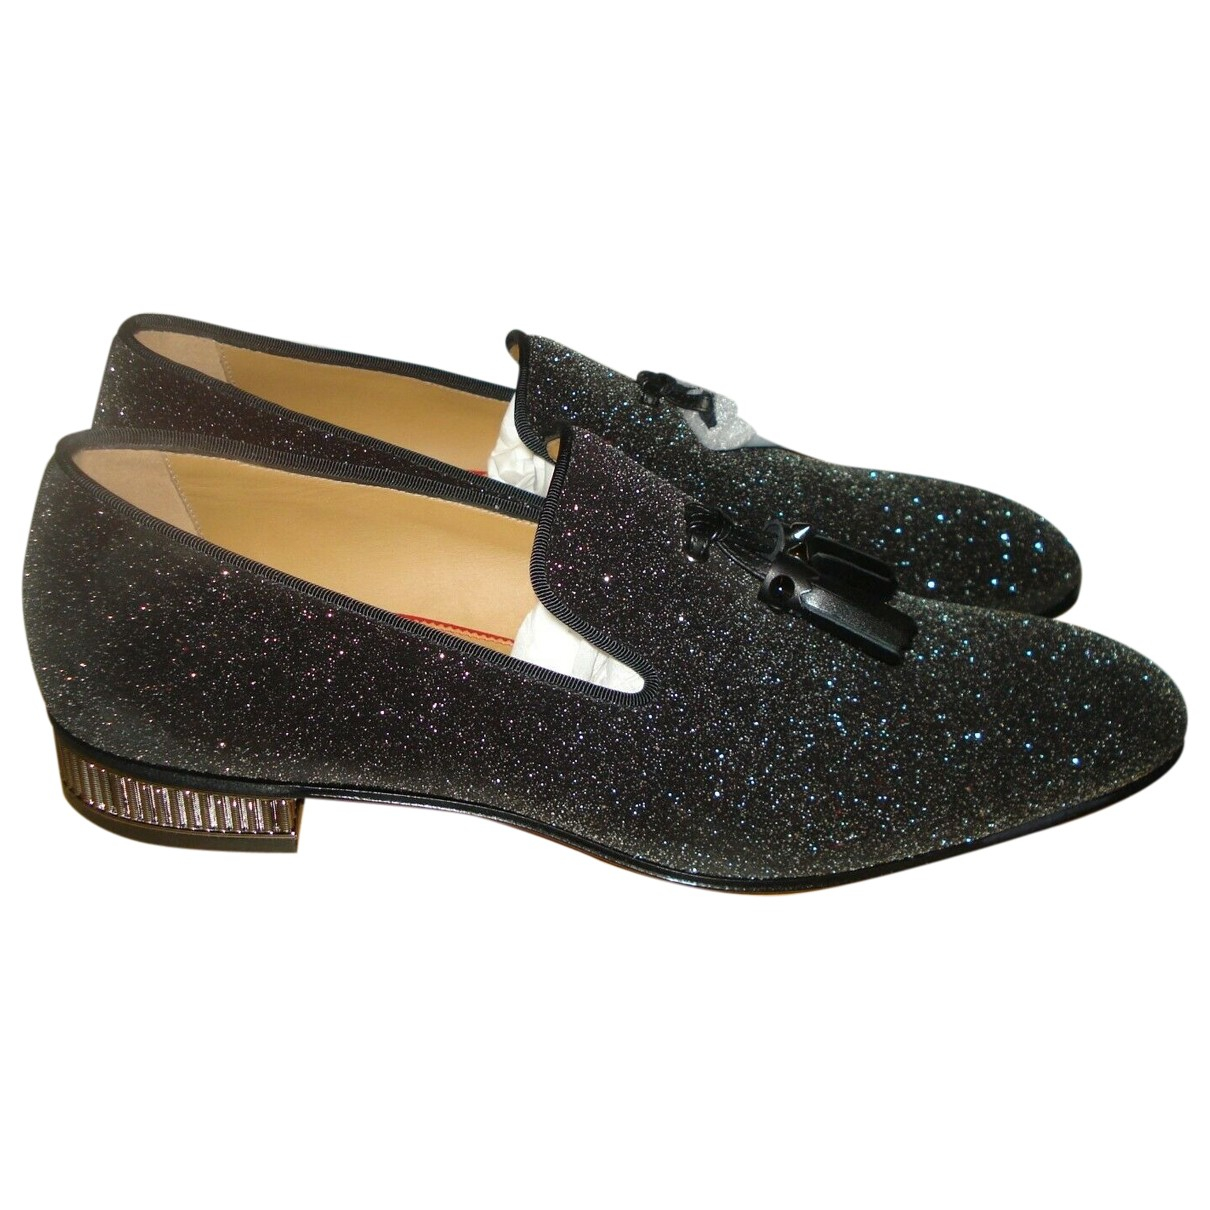 Christian Louboutin \N Black Glitter Flats for Men 39 EU